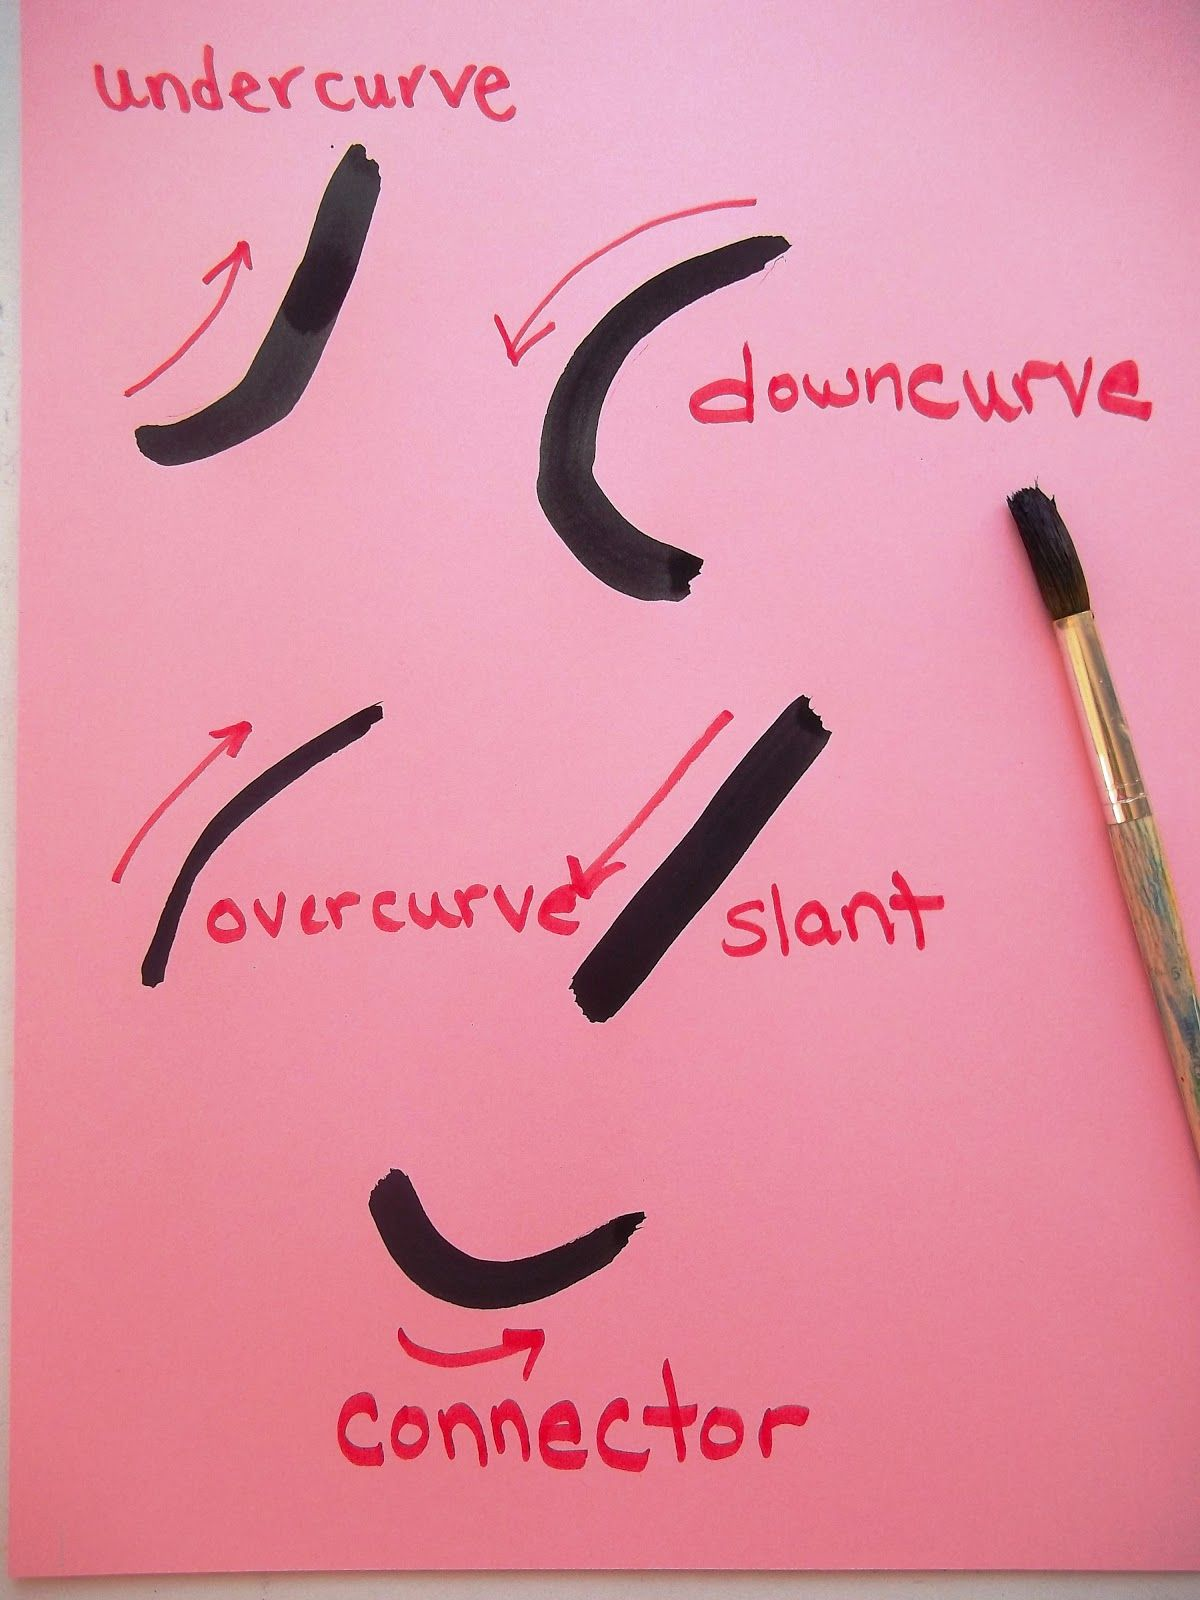 Teaching Cursive Writing Strokes With Watercolor Paint